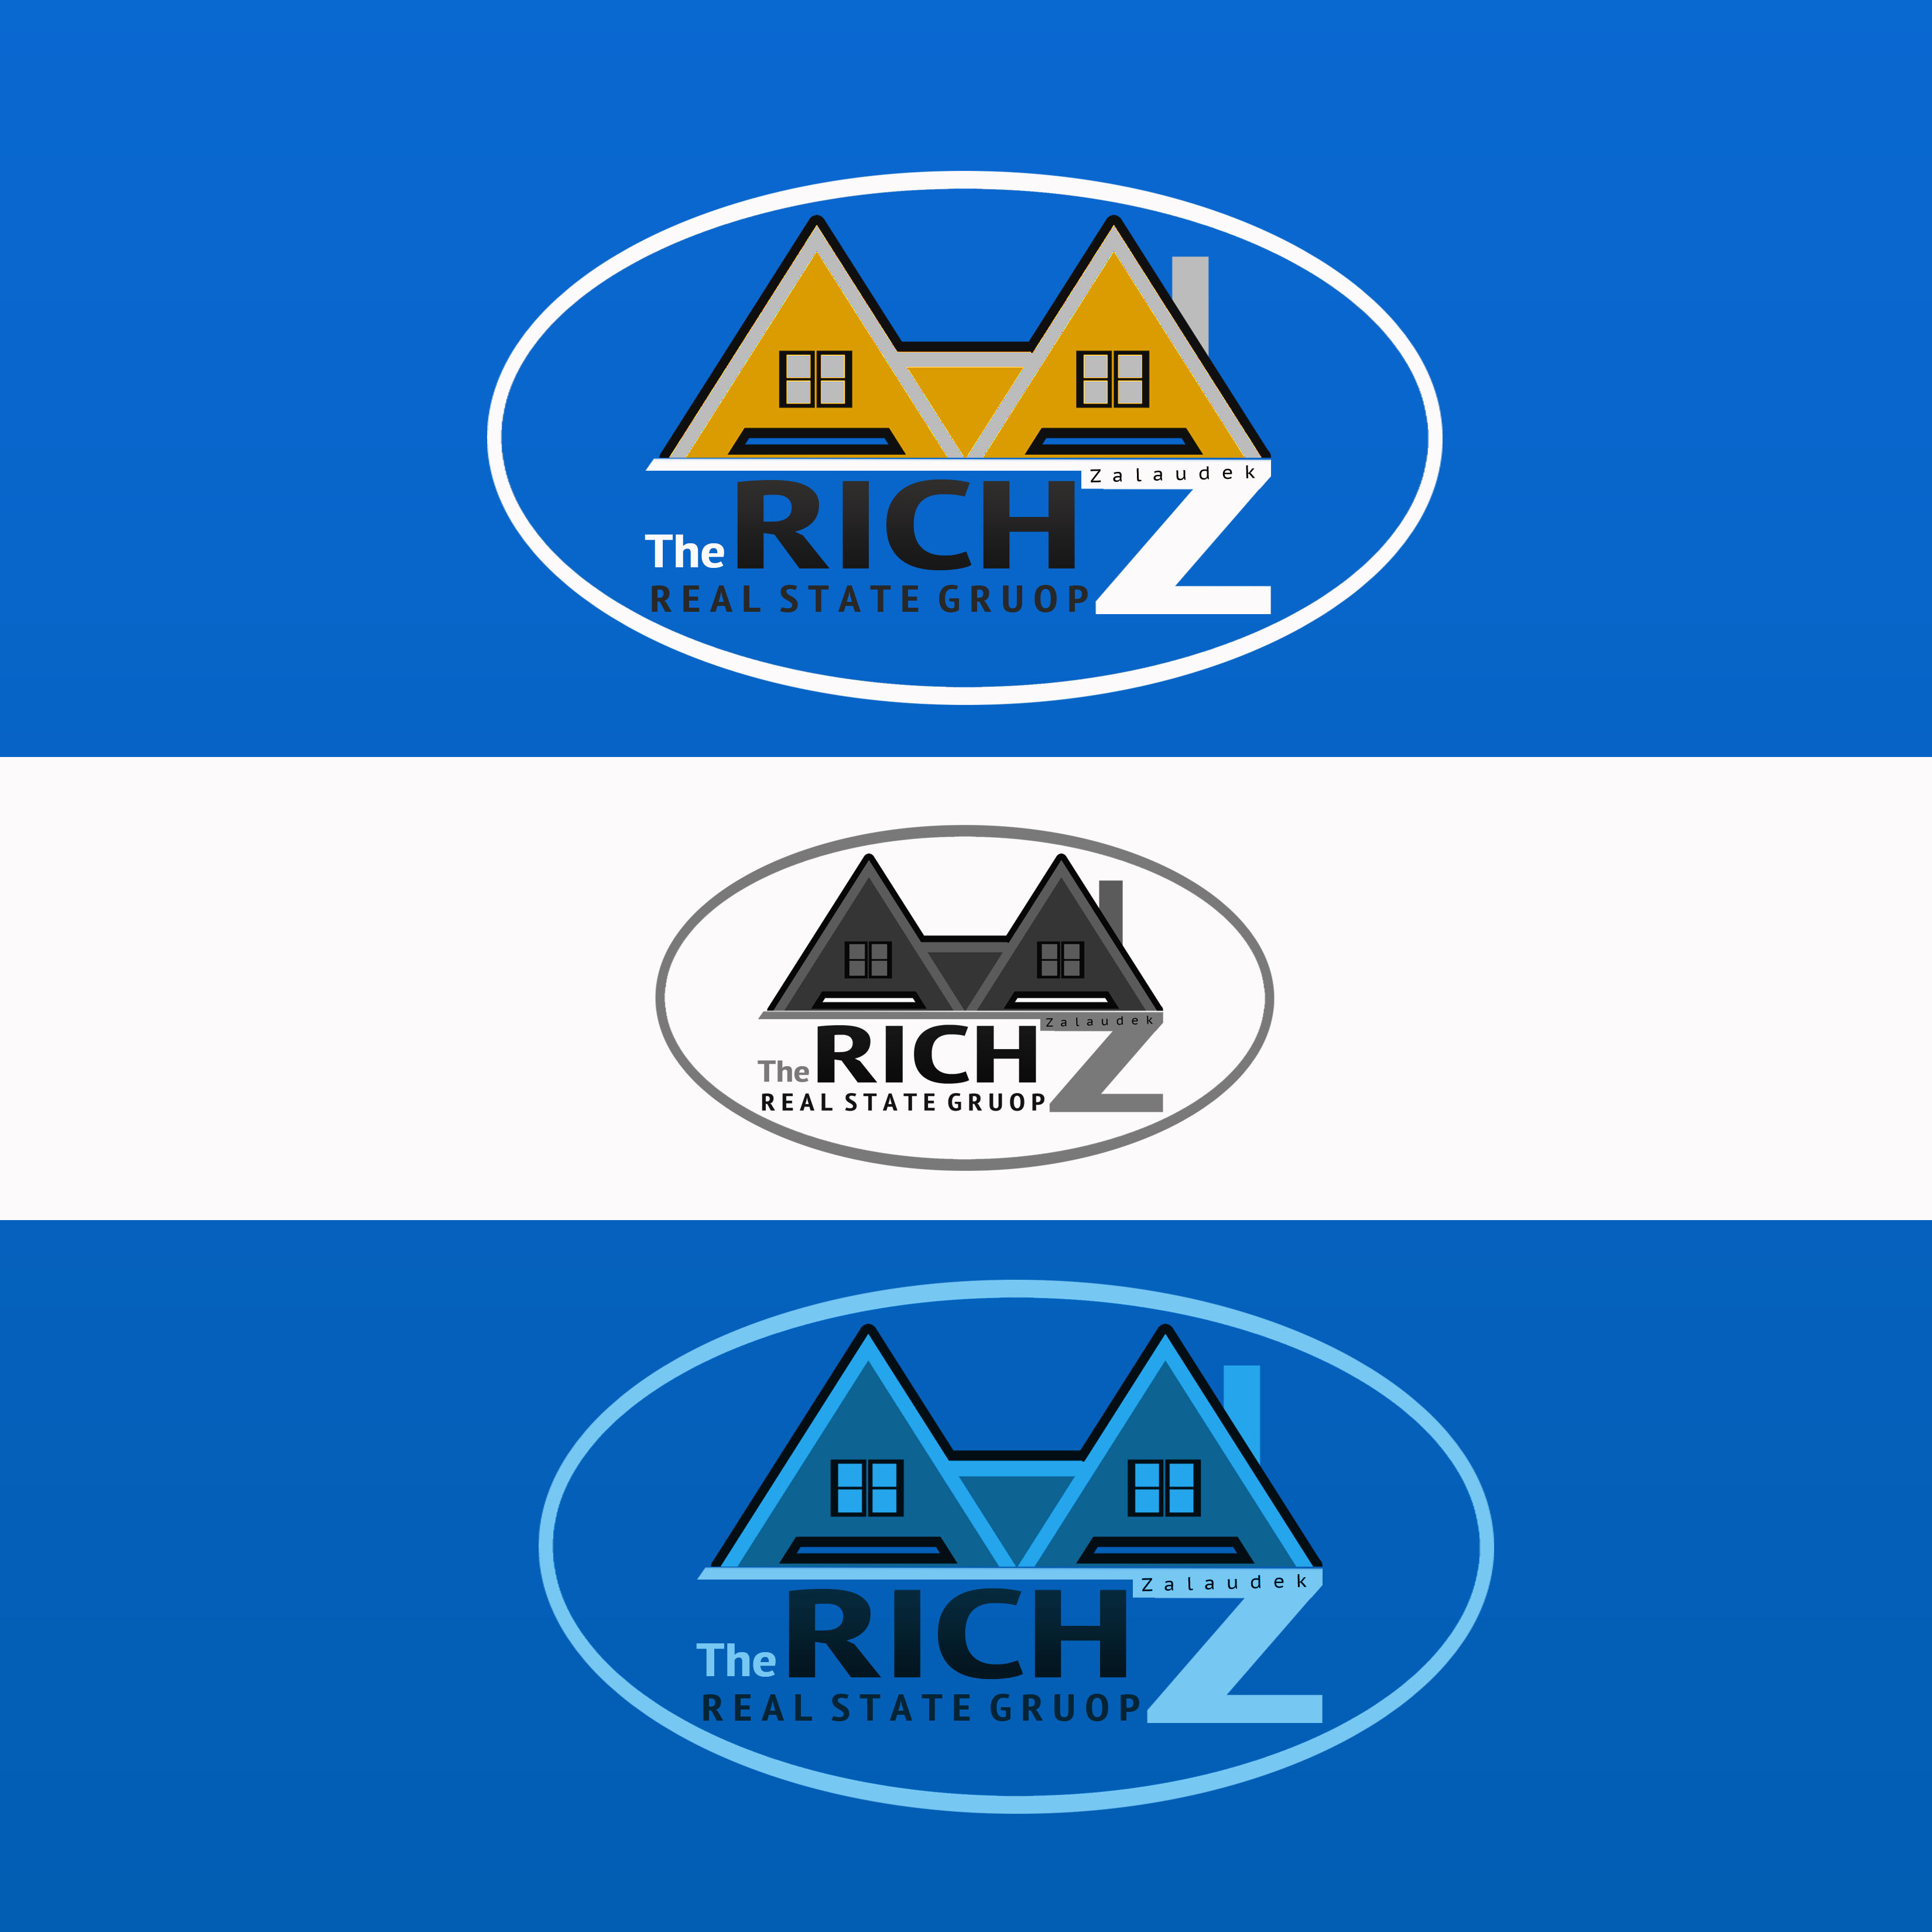 Logo Design by Allan Esclamado - Entry No. 49 in the Logo Design Contest The Rich Z. Real Estate Group Logo Design.